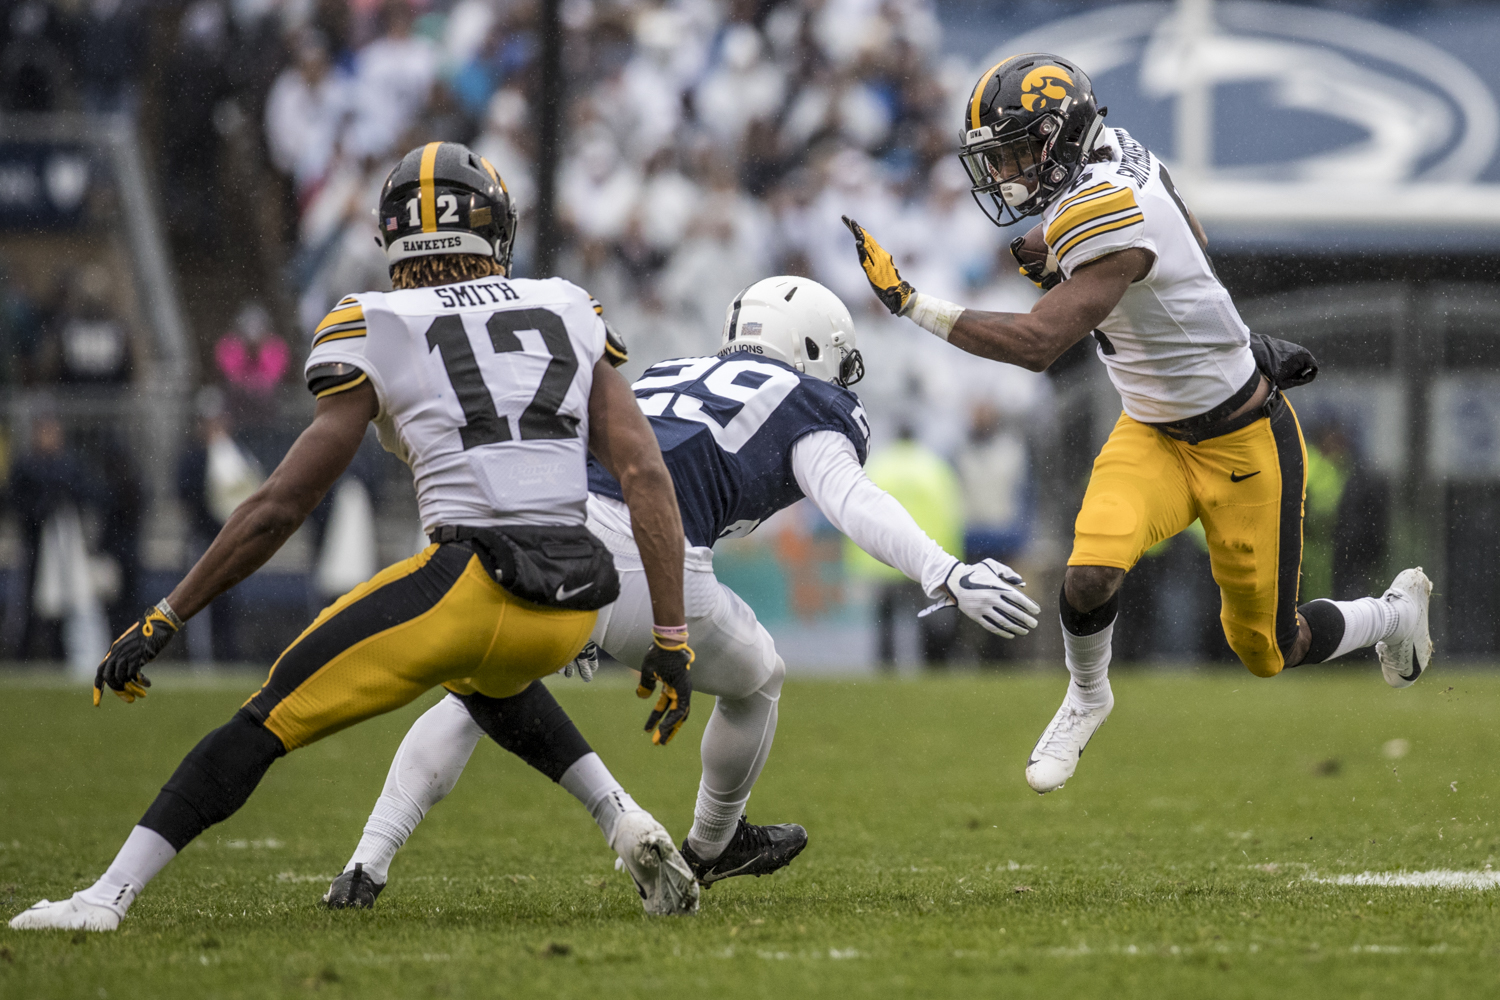 Iowa wide receiver Ihmir Smith-Marsette avoids a defender during Iowa's game against Penn State at Beaver Stadium on Saturday, Oct. 27, 2018. The Nittany Lions defeated the Hawkeyes 30-24.